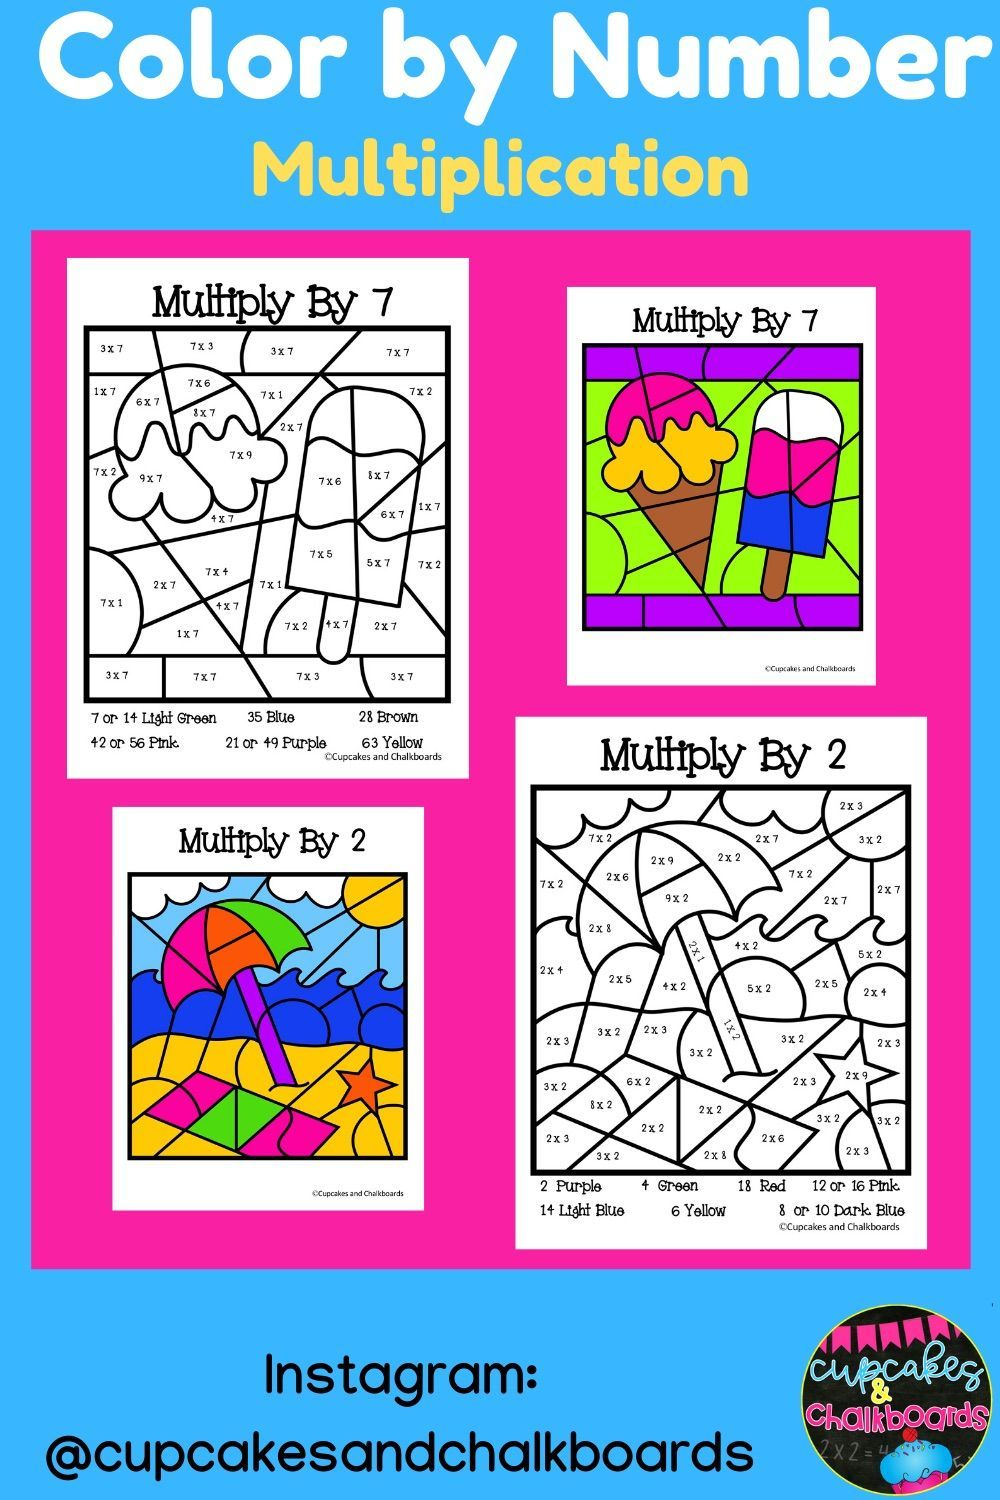 Printable Multiplication Facts Color By Number Worksheets Multiplication Facts Multiplication Math Resources [ 1500 x 1000 Pixel ]